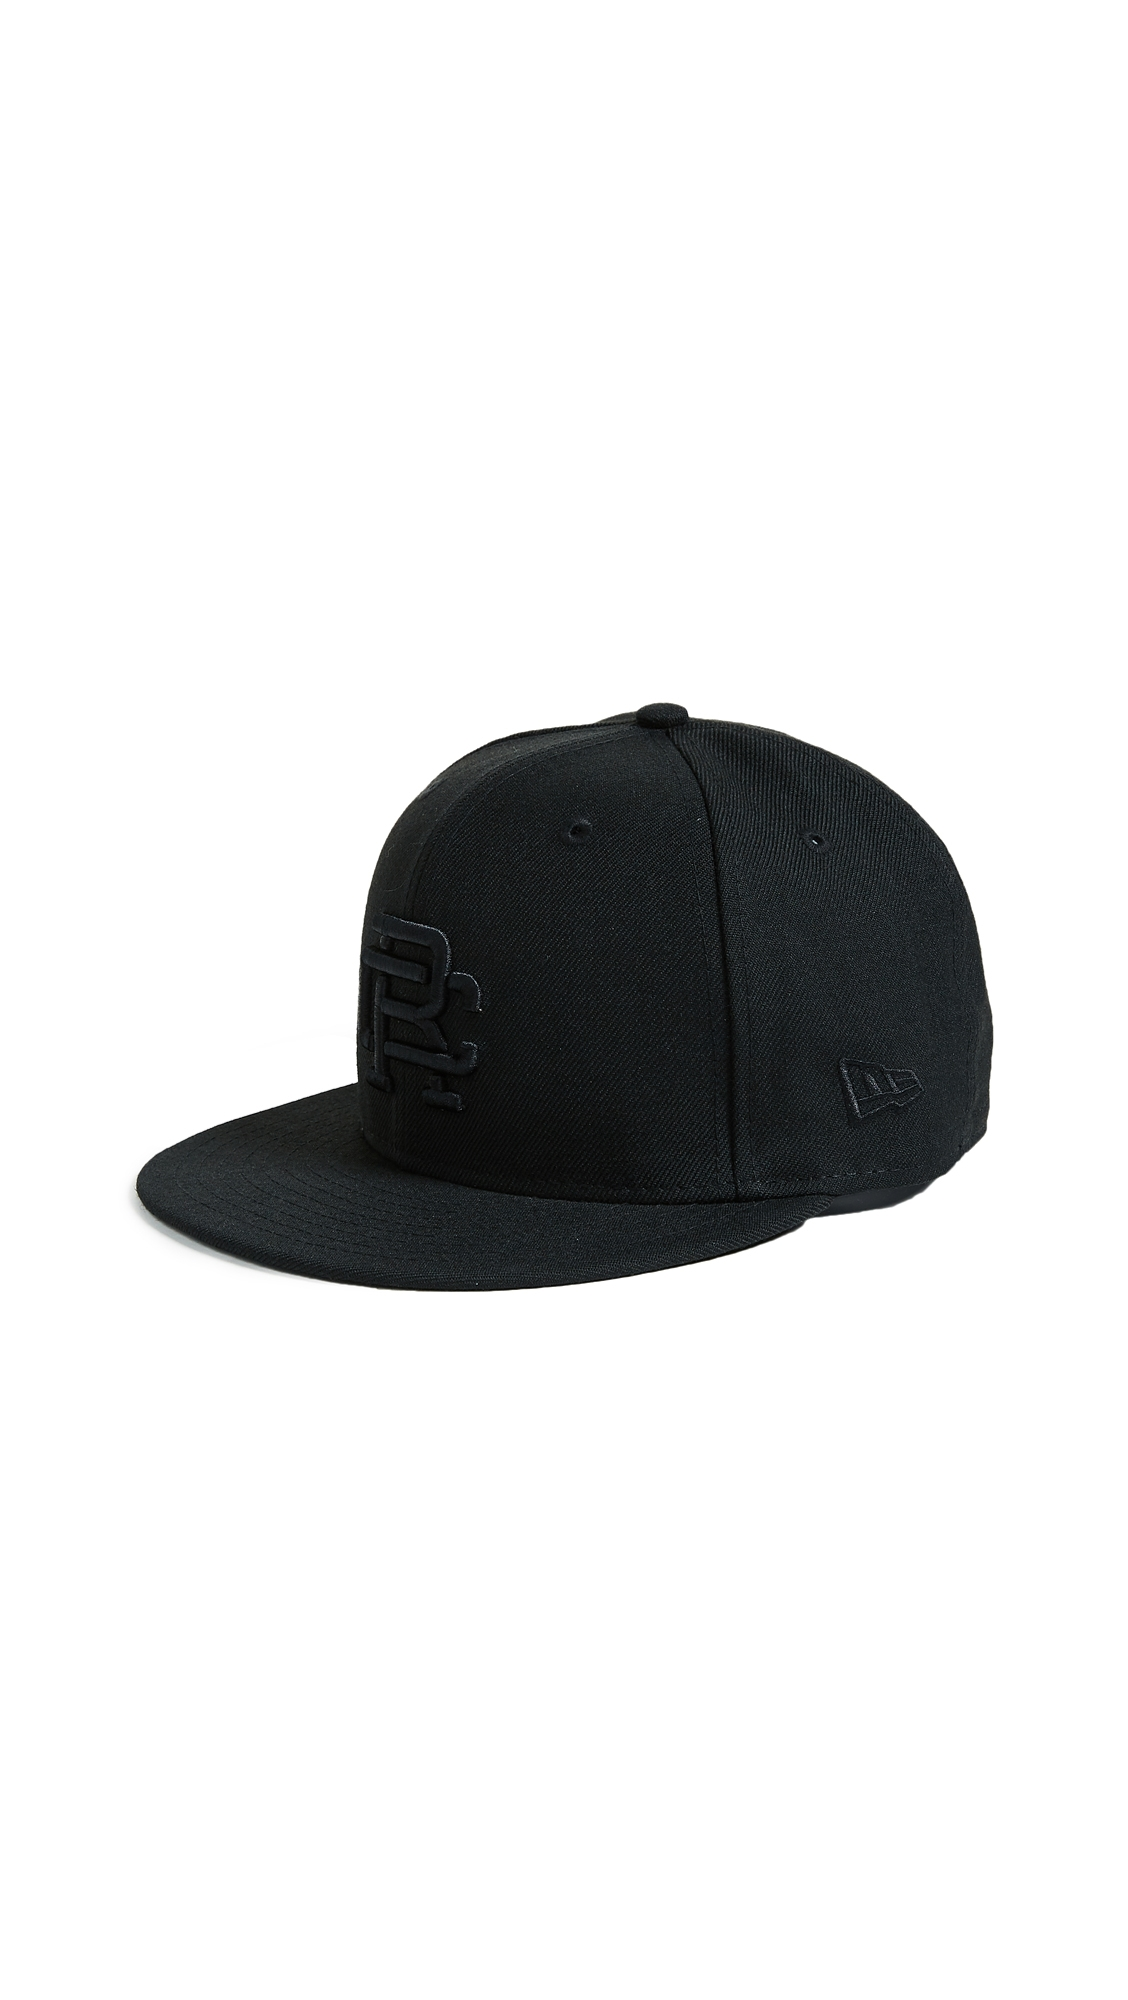 de1dc31039c Reigning Champ New Era Cap In Black Black